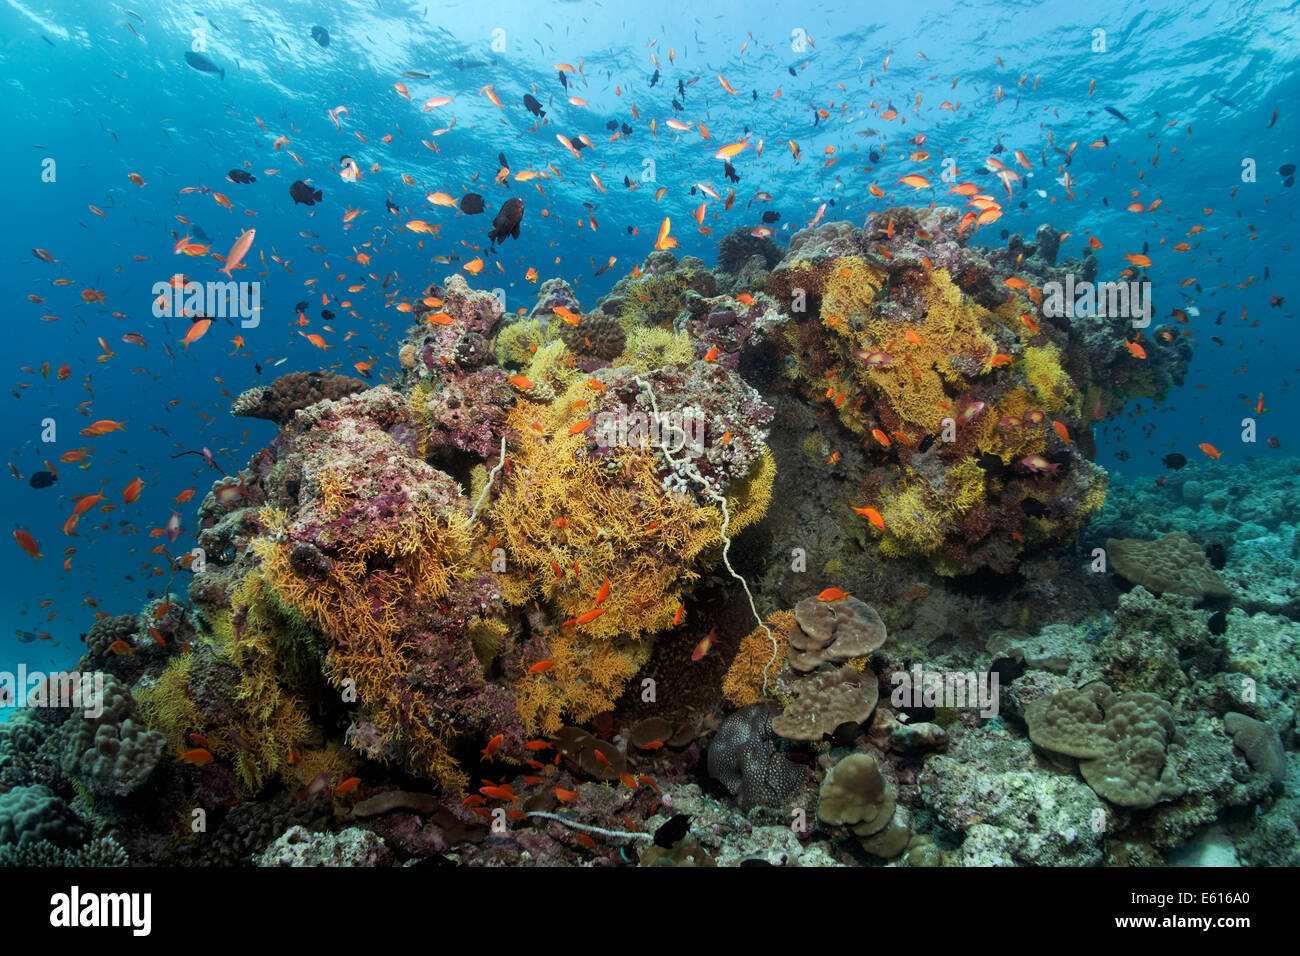 Coral block from various soft corals and hard corals, with Anthias (Anthiinae), Lhaviyani Atoll, Indian Ocean, Maldives - Stock Image